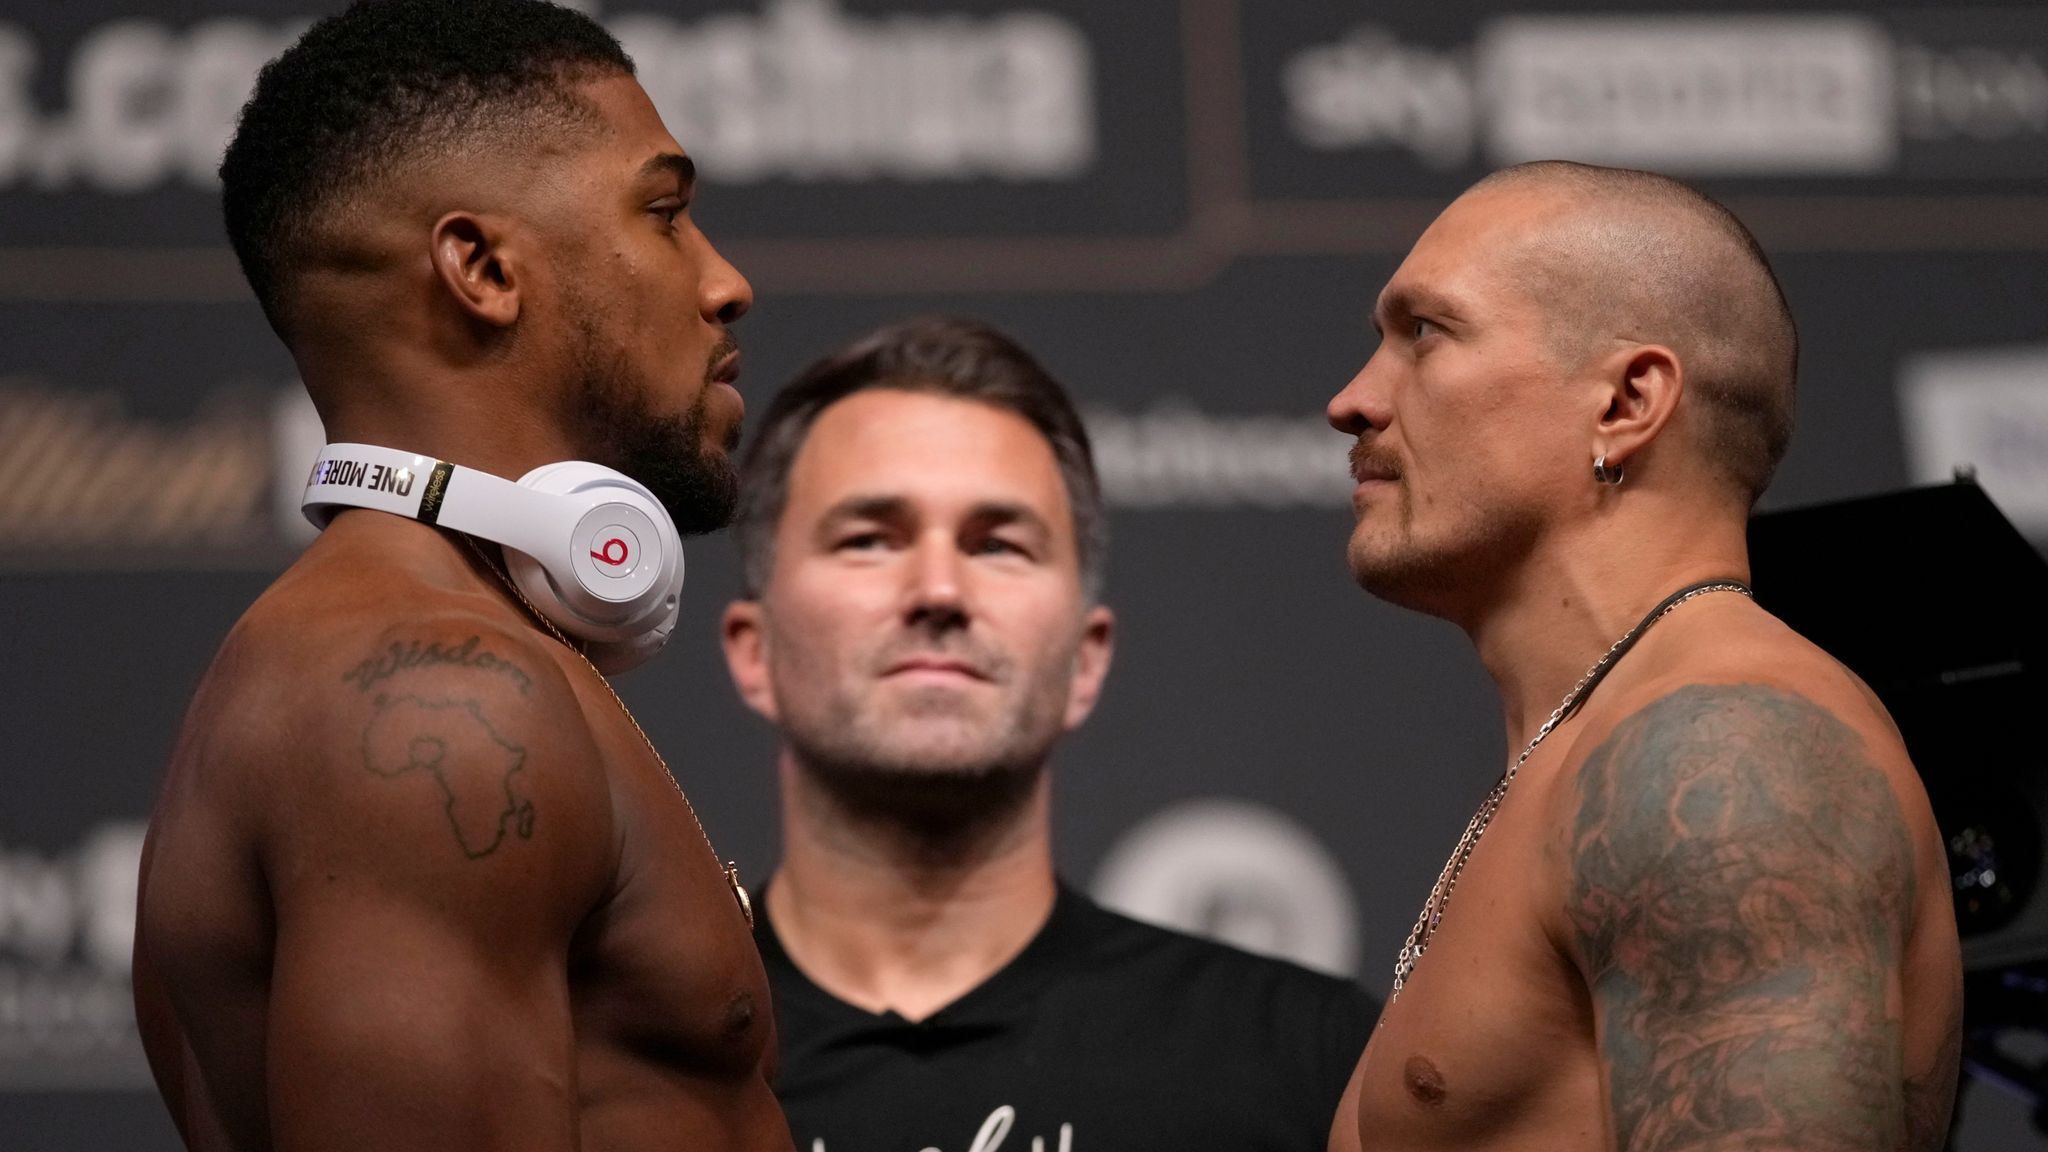 Anthony Joshua and Oleksandr Usyk: Tense stare-down at weigh-in before  world heavyweight title fight   UK News   Sky News